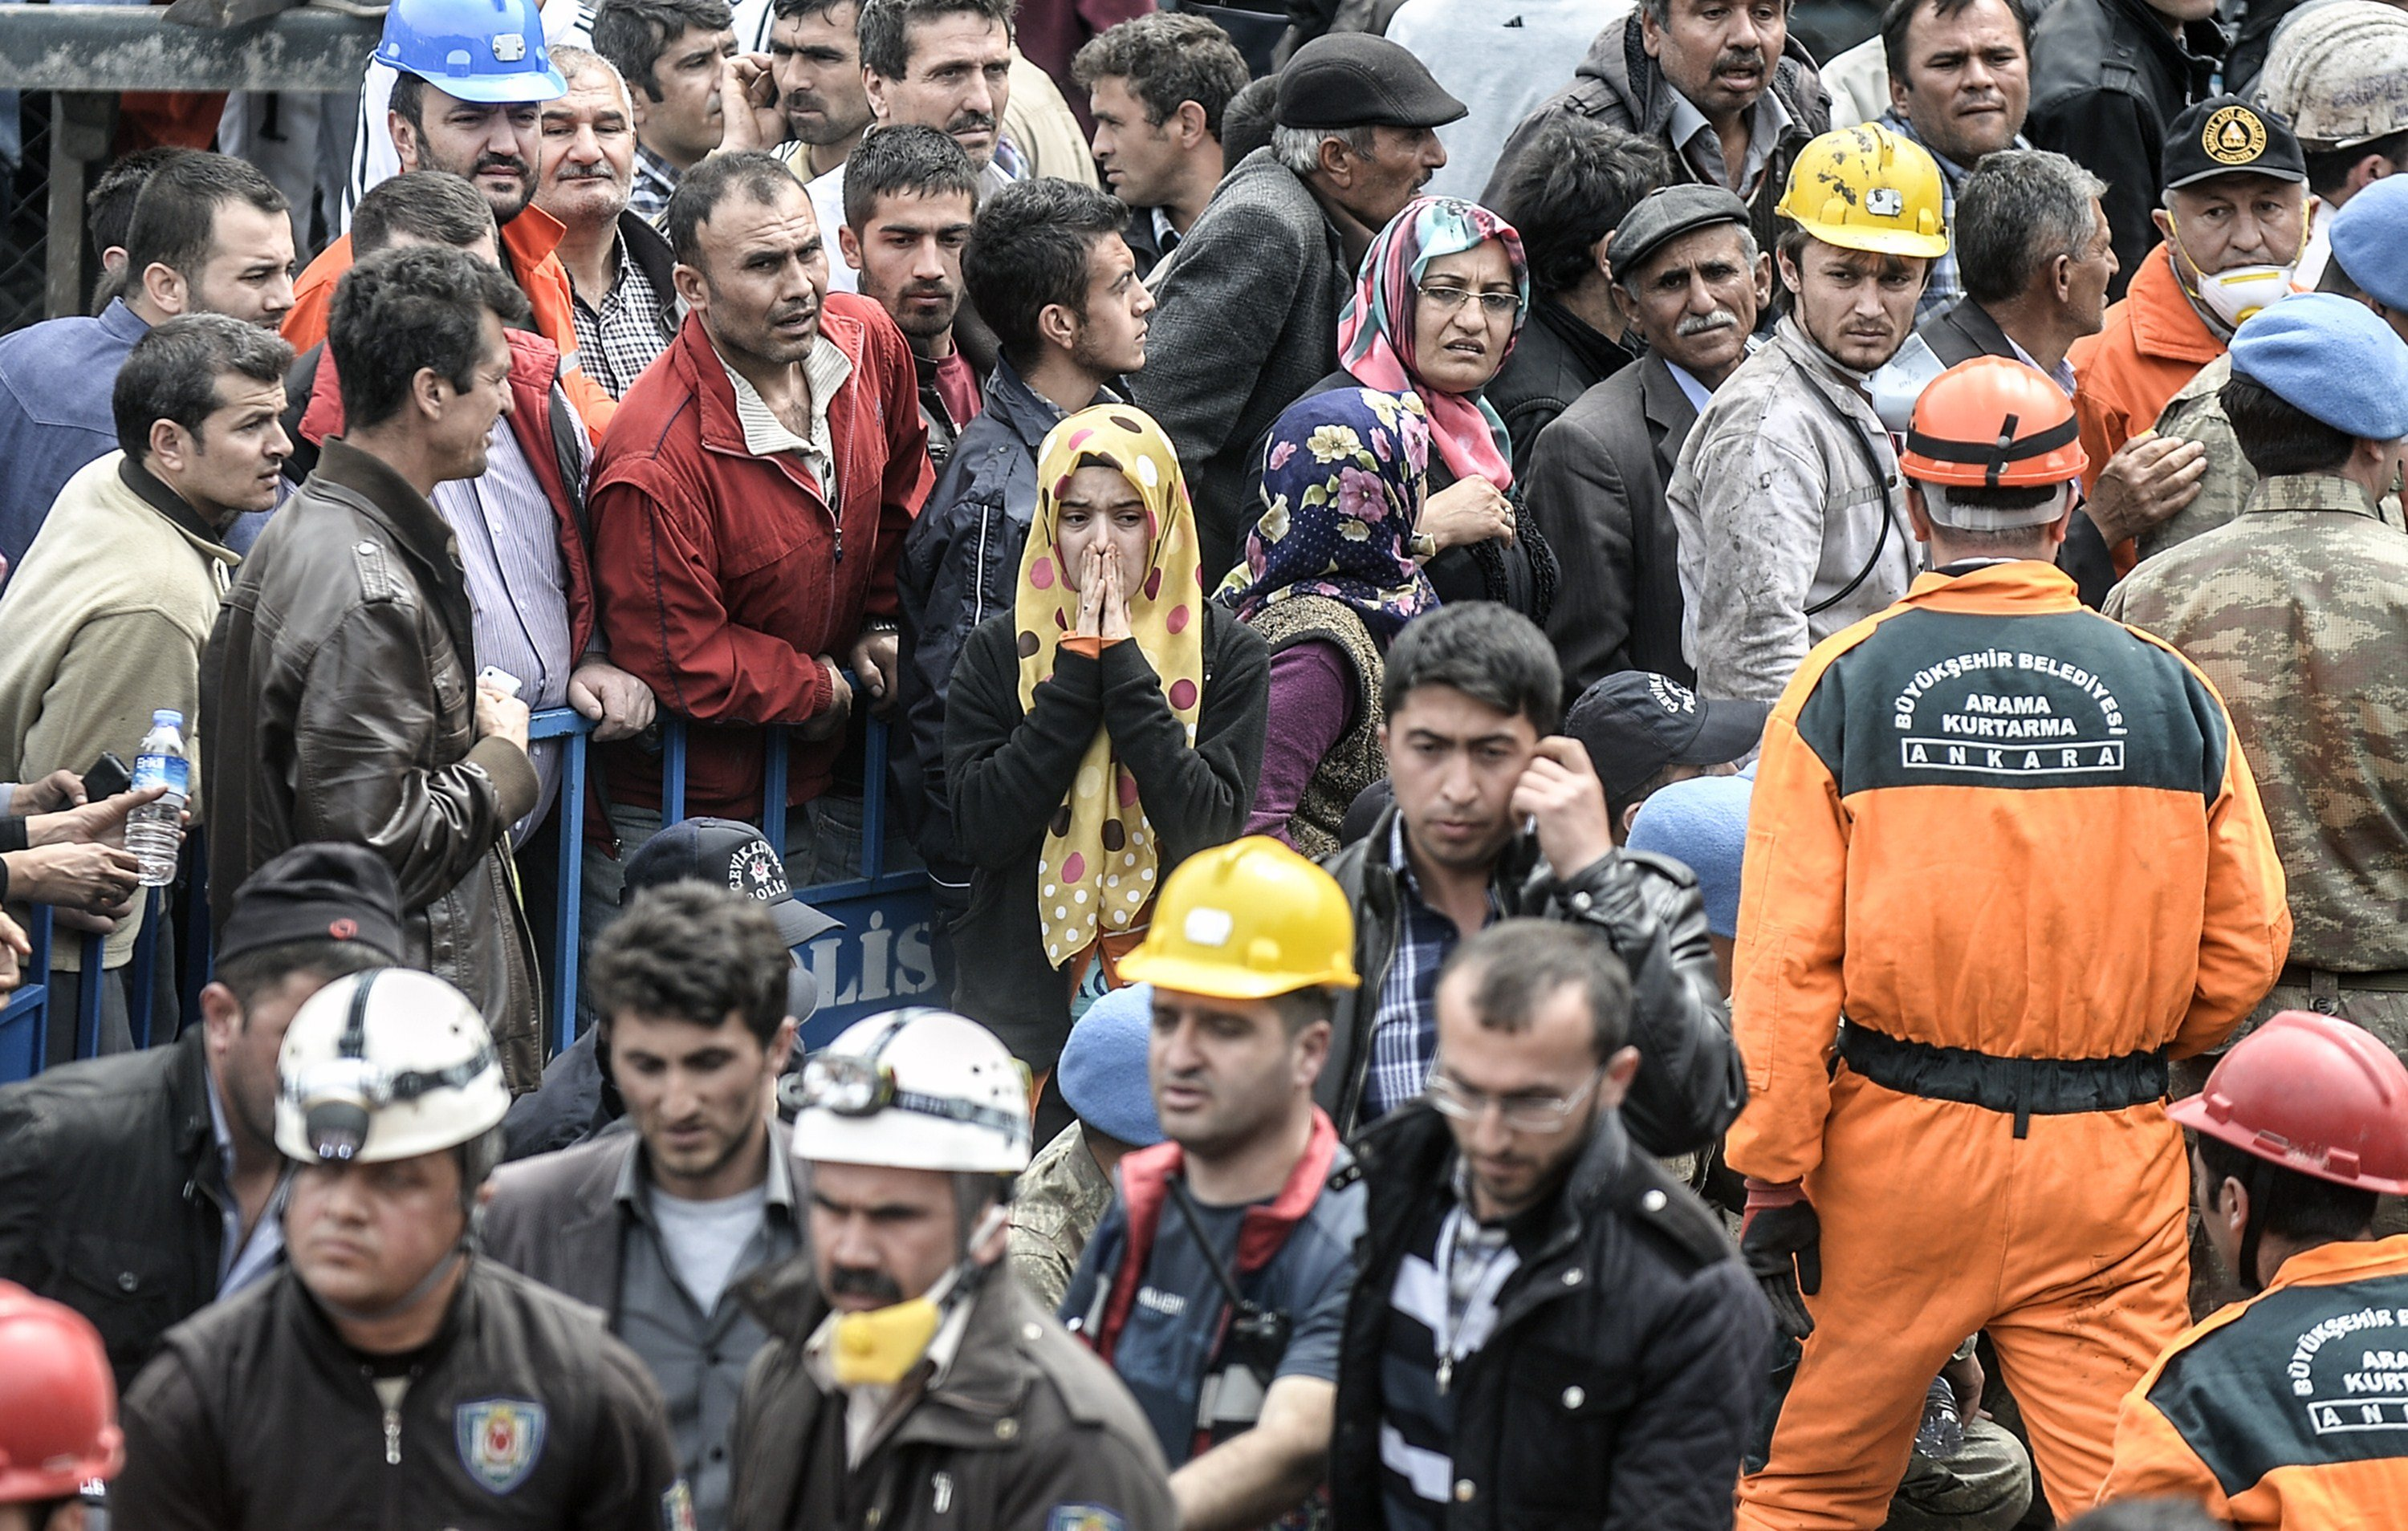 People gather, searching for their relatives, as rescuers carry out bodies of dead miners on May 14, 2014 after an explosion and fire in a coal mine in the western Turkish province of Manisa.